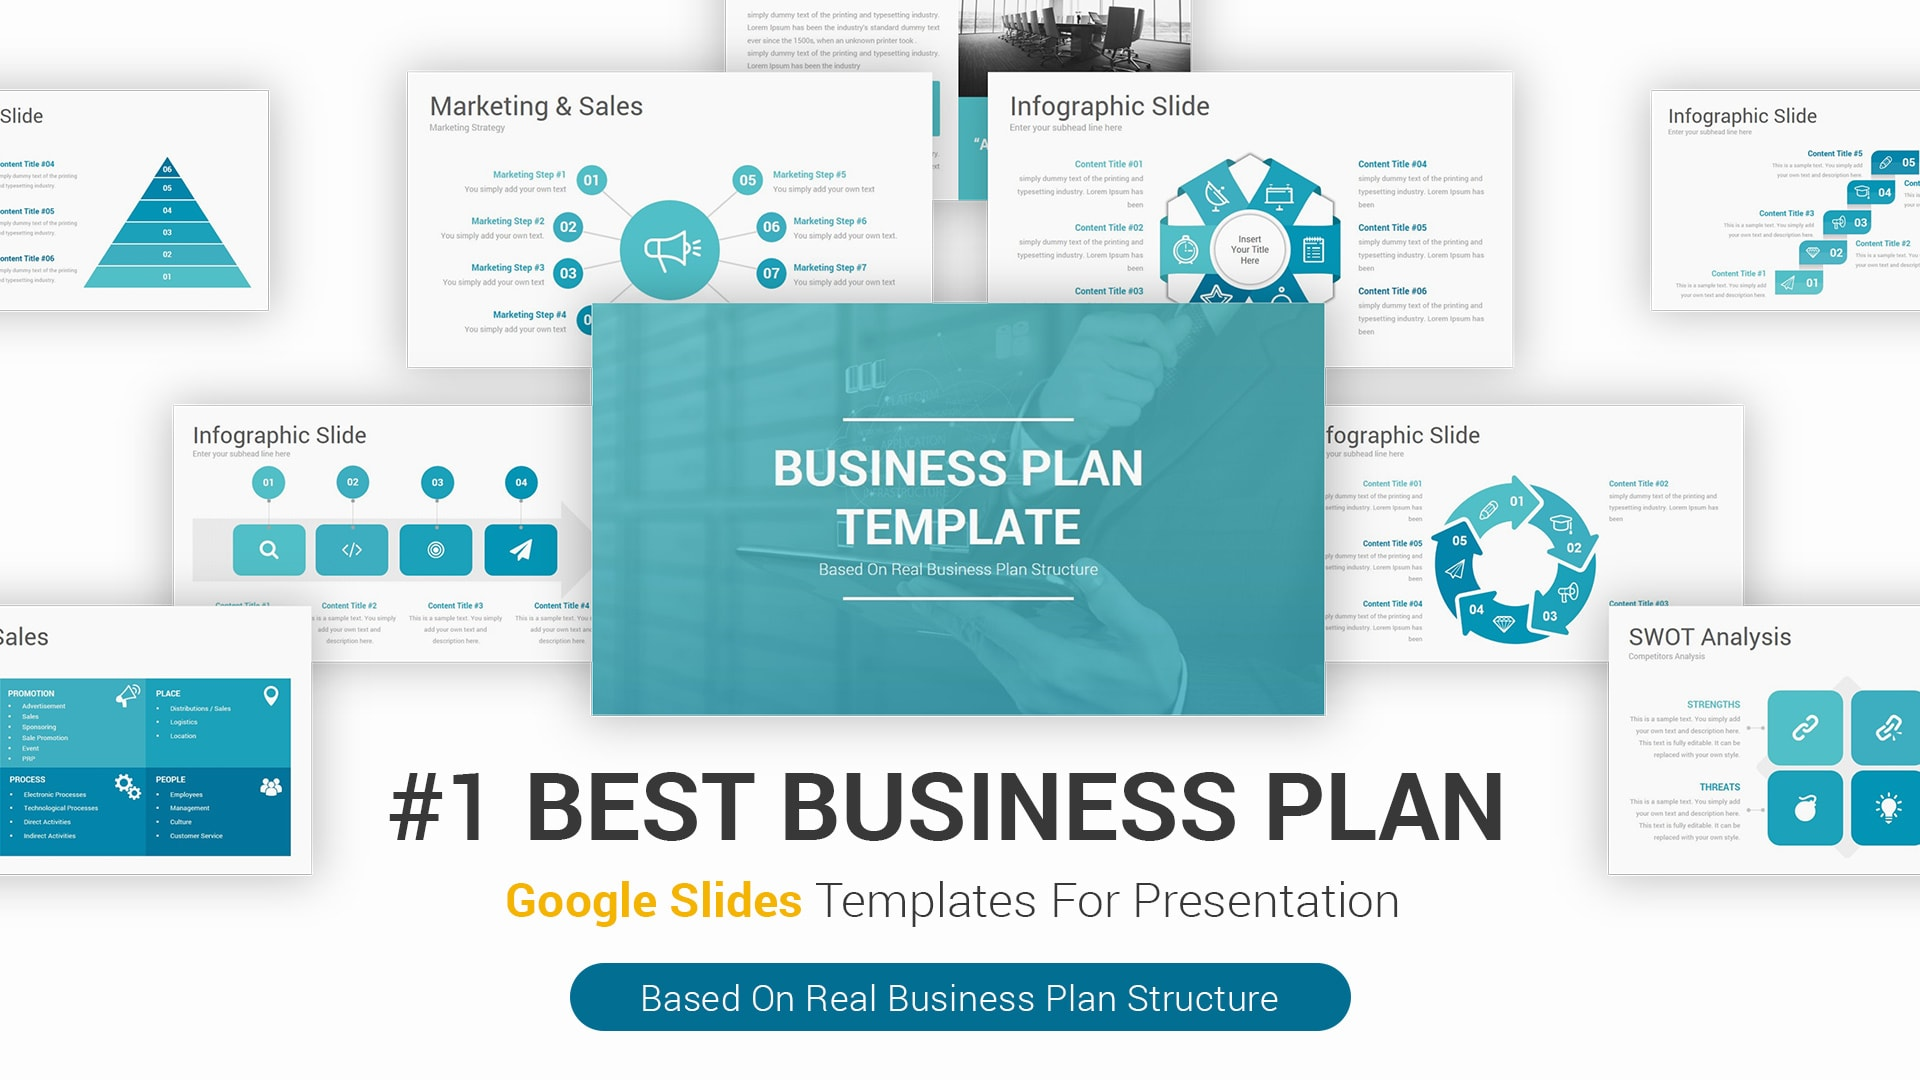 Best Business Plan Google Slides Themes Templates for Presentations